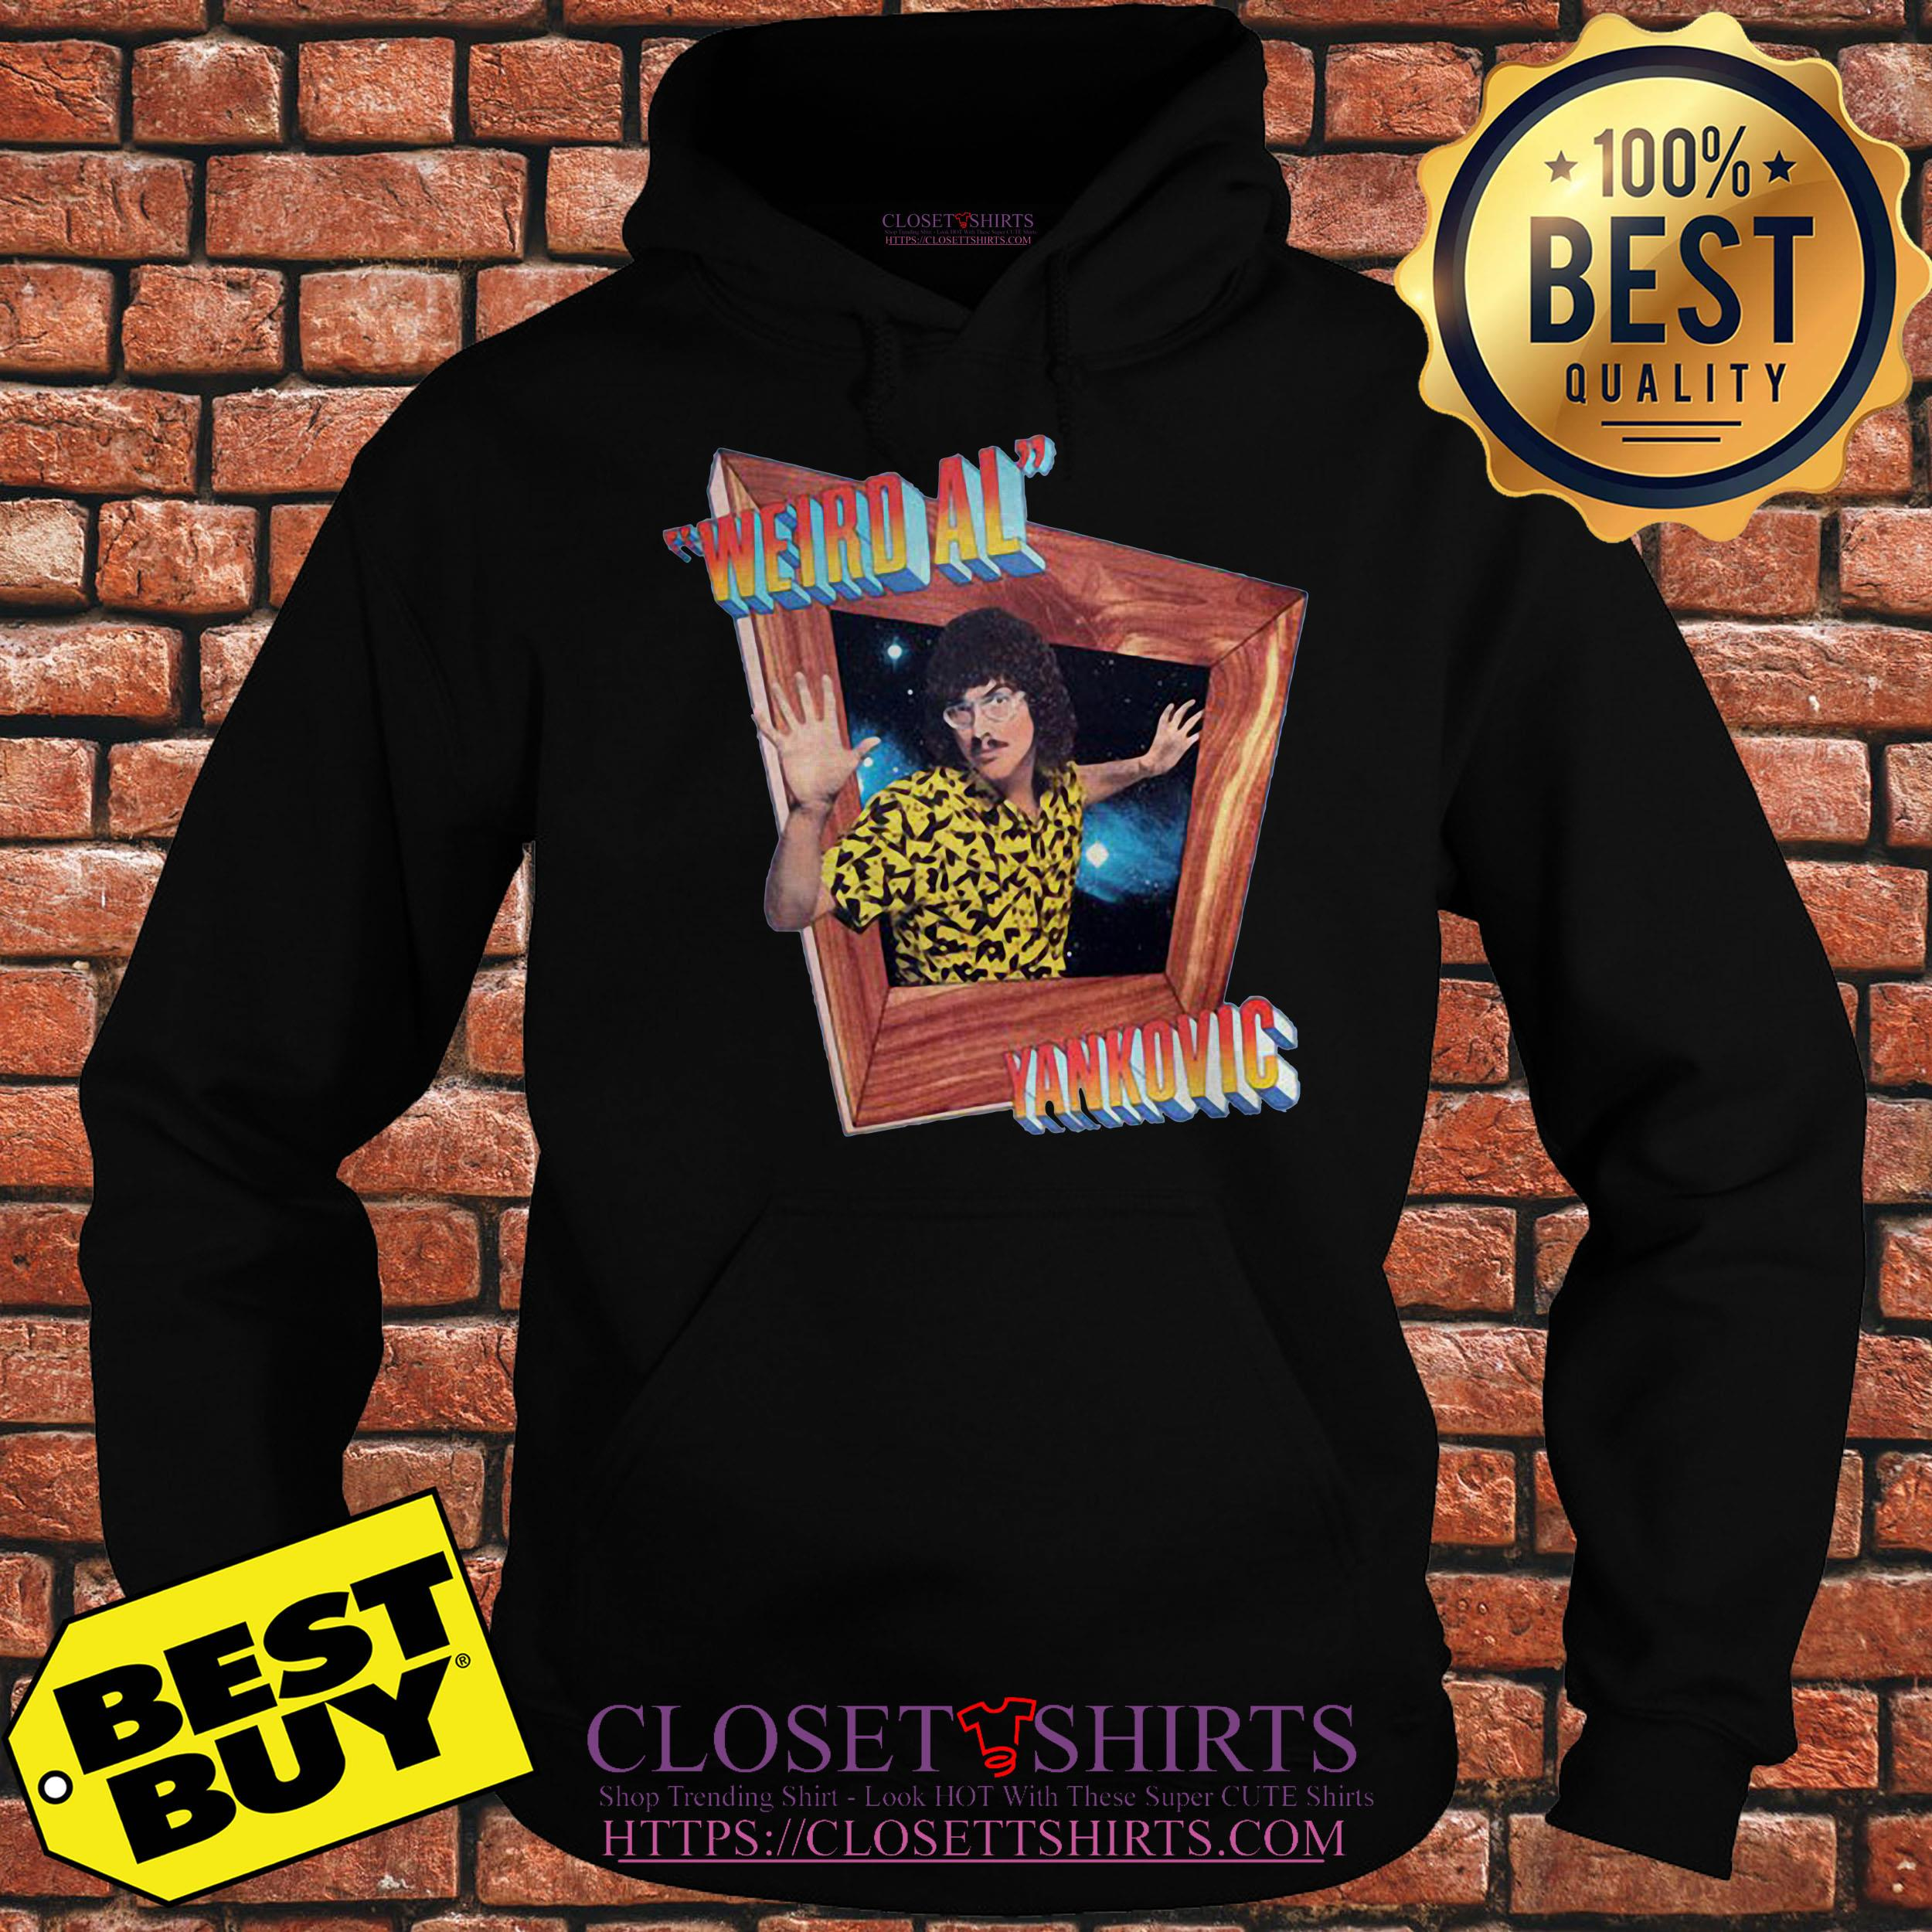 Dustin Weird Al Yankovic Stranger Things hoodie